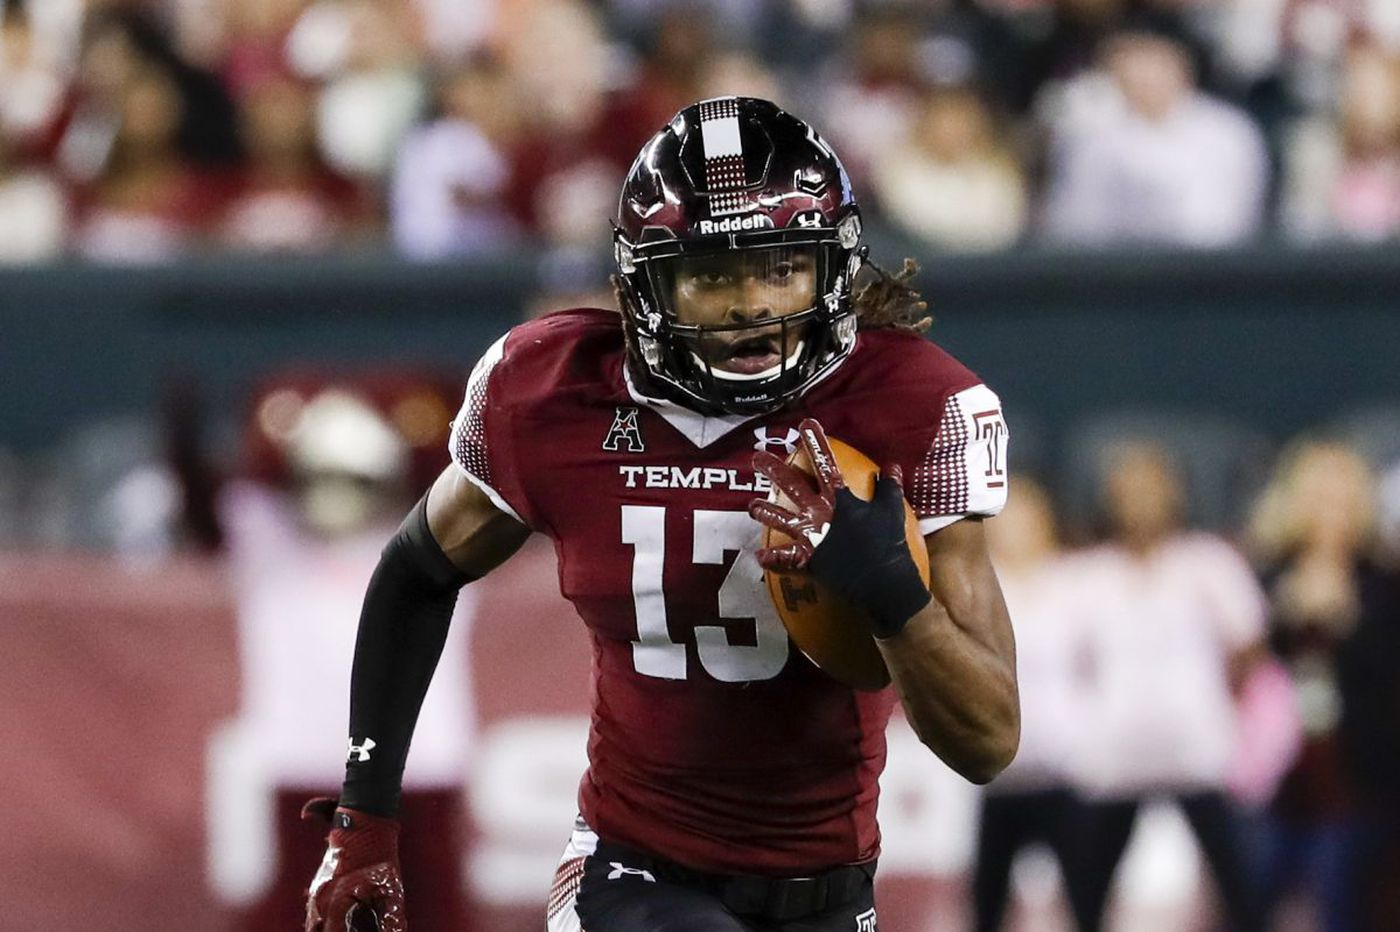 Temple to play Florida International in Gasparilla Bowl